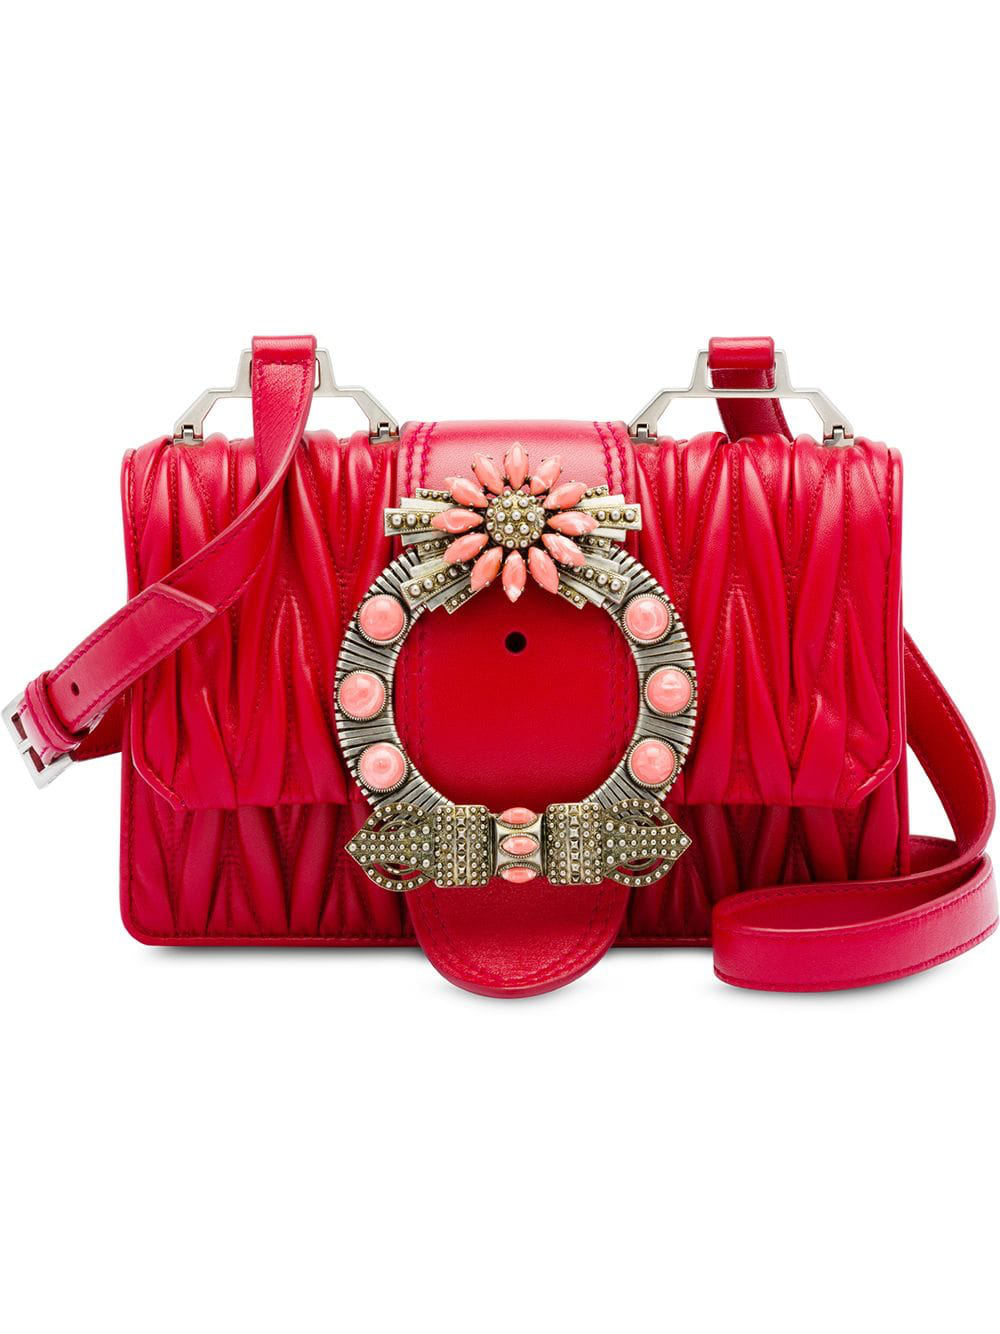 af1c8924d6 Miu Miu Miu Lady Matelassé Leather Shoulder Bag - Red